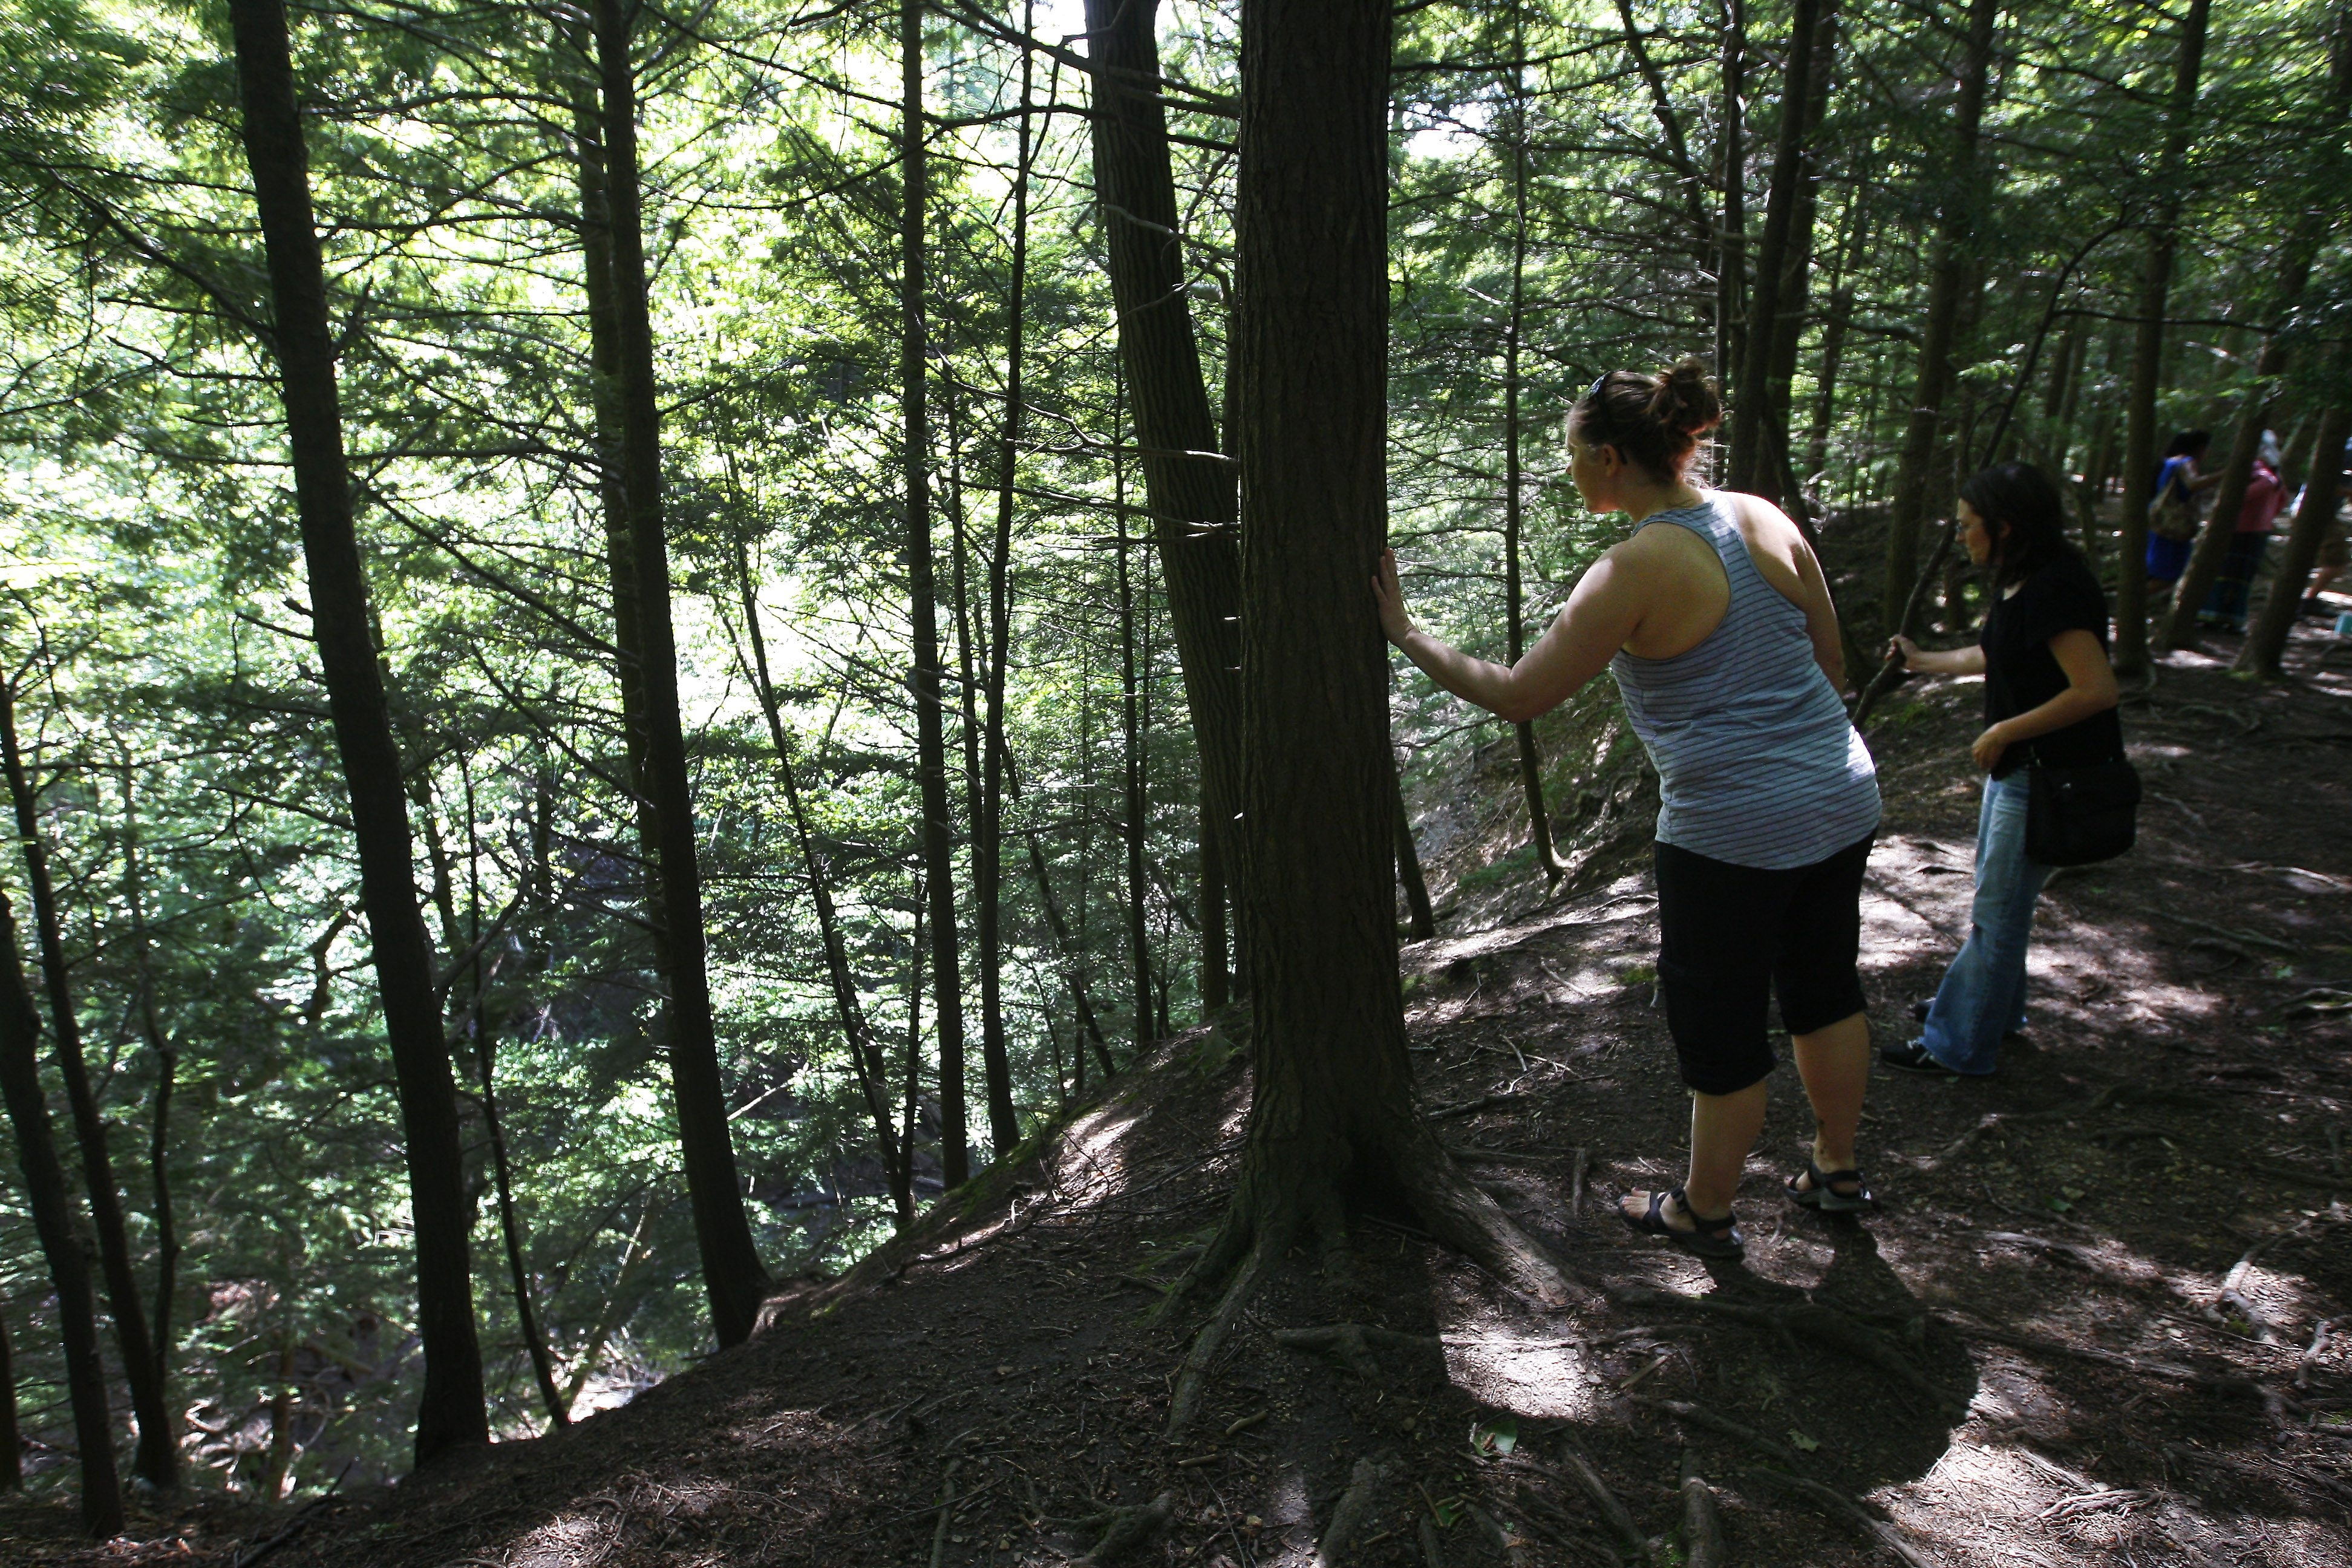 Hikers look over a steep embankment Friday on the Eternal Flame Trail in Chestnut Ridge Park in Orchard Park.